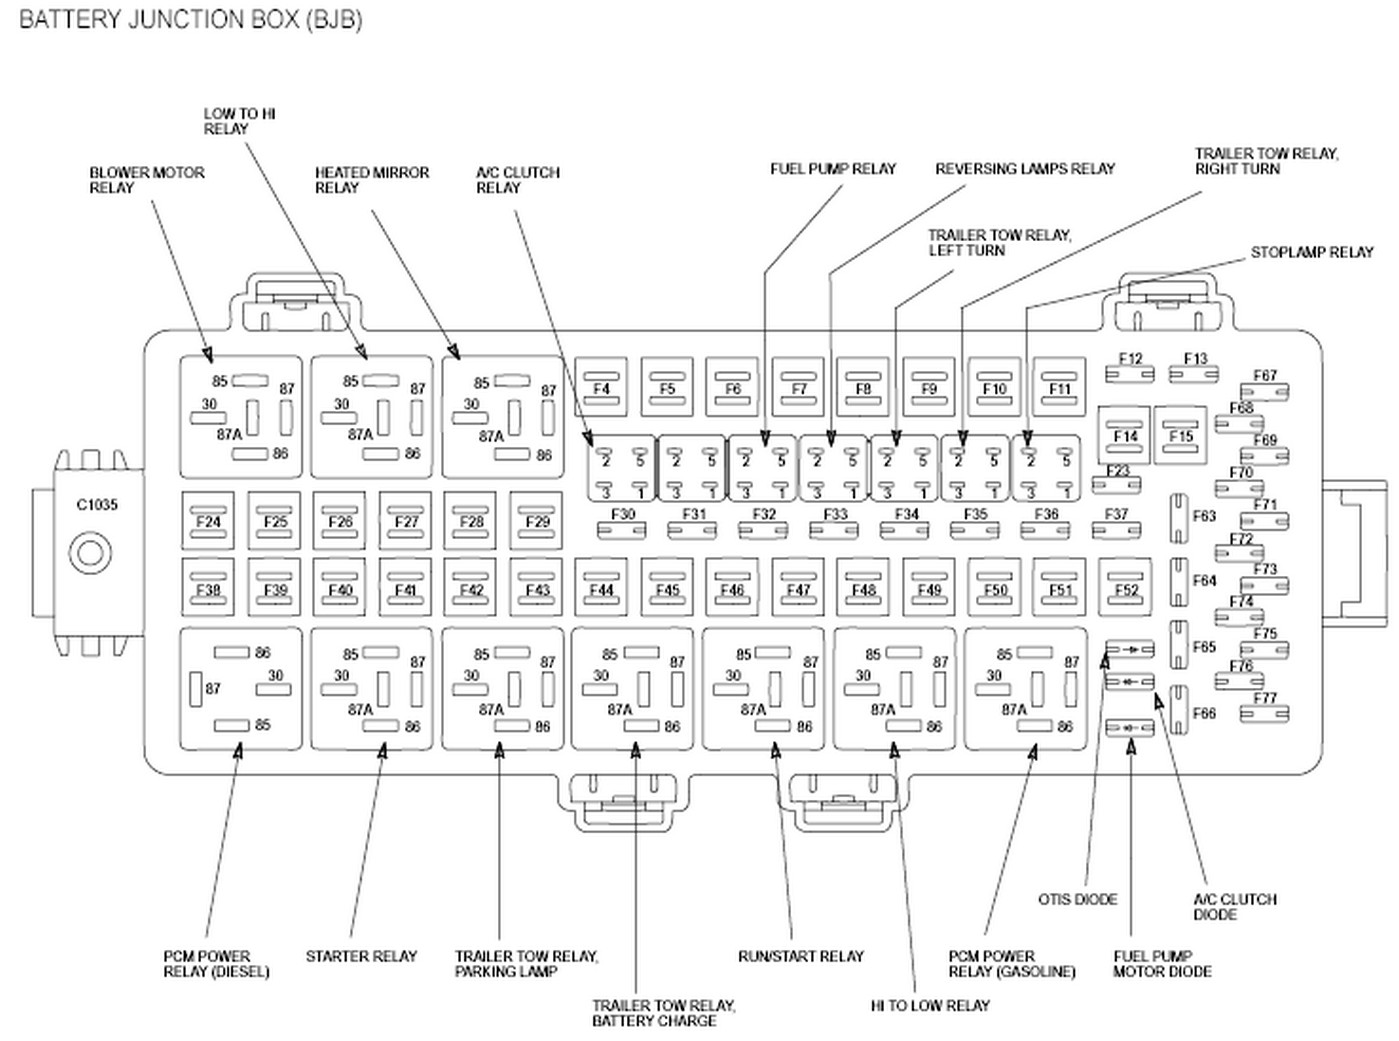 2011 ford f 350 fuse box wiring diagram schematics rh thyl co uk 2008 F250 Fuse Panel Location 2008 F250 Fuse Locations